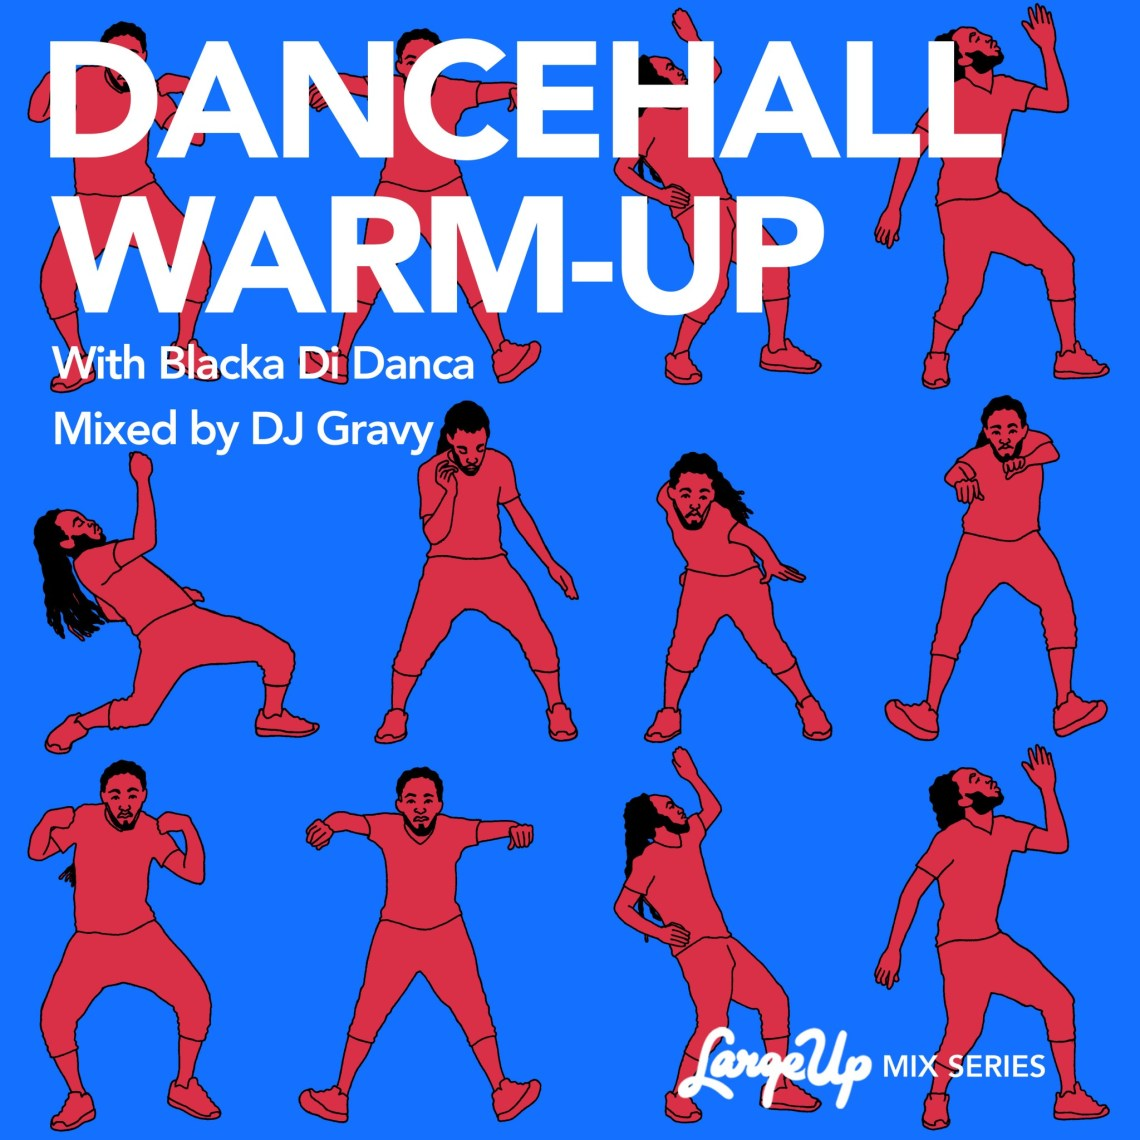 blacka-di-danca-dj-gravy-dancehall-warm-up-mixtape